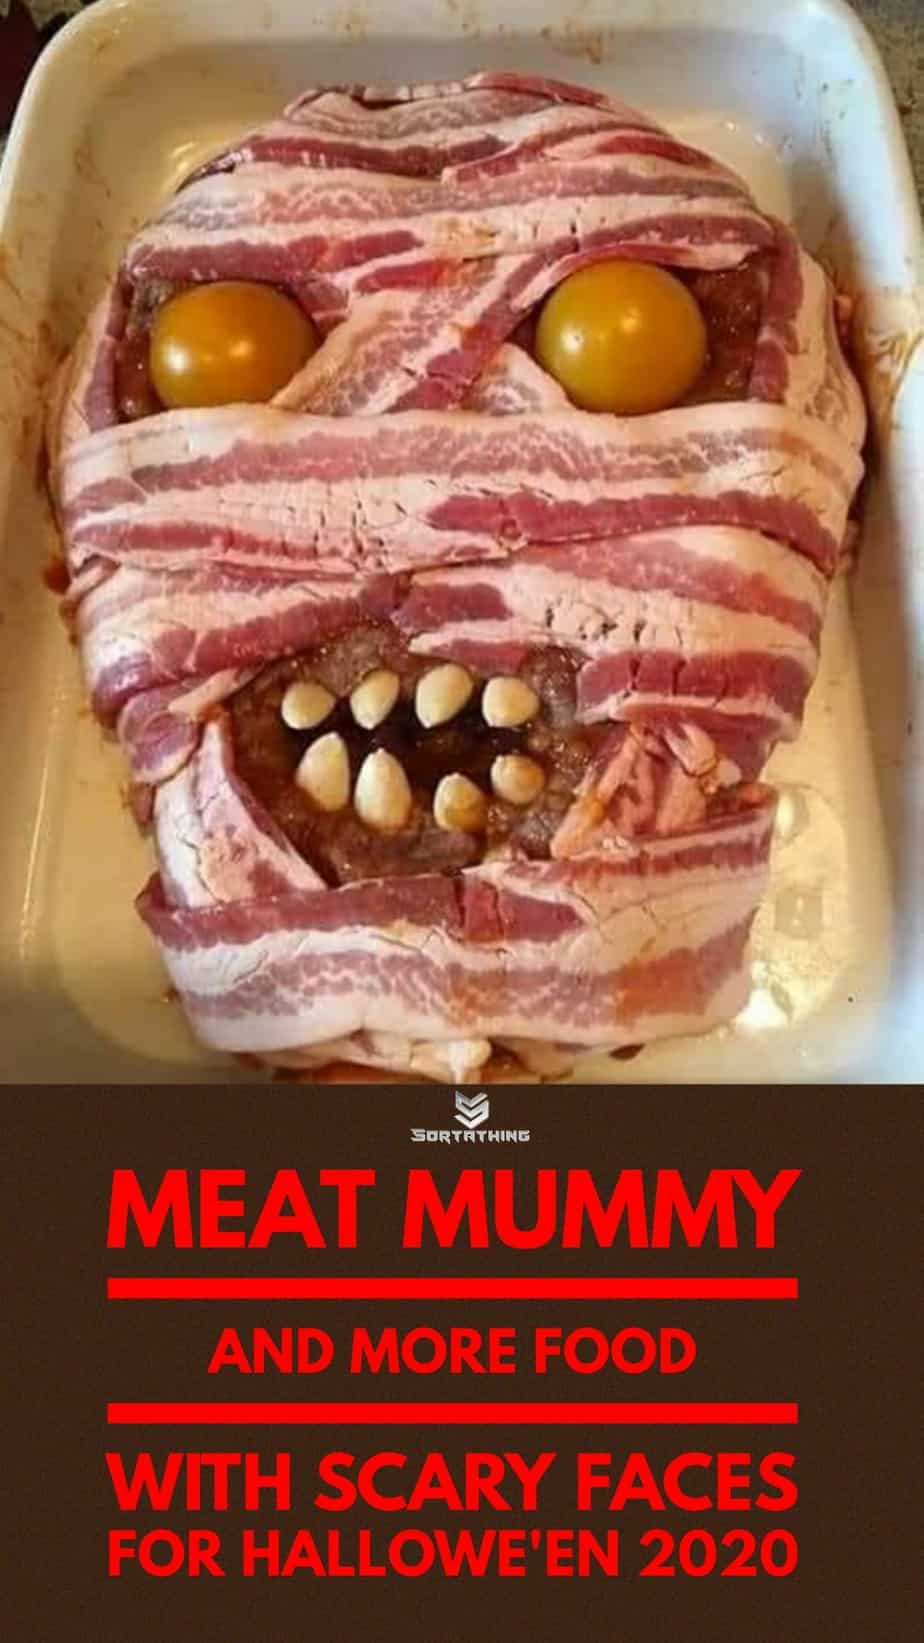 bacon-wrapped meat mummy horror food for halloween